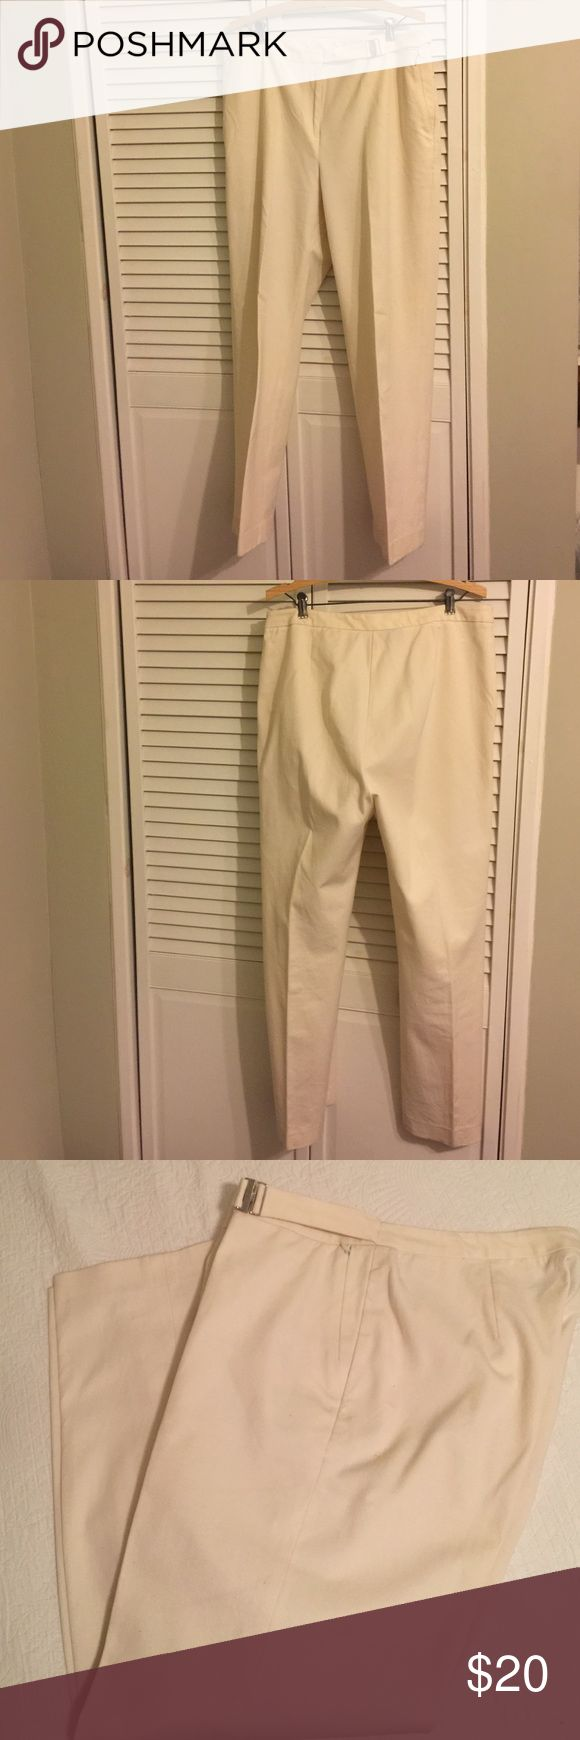 Lauren Ralph Lauren winter white slacks size 16 Beautiful winter white stretch Ralph Lauren slacks.  Zipper front;  two zipper closure slash pockets for a flat look on front;  very comfortable and a nice weight material;  self belt detail on front left (see picture).  Has been in my closet for awhile so needs a dry cleaning.  Price reflects the need to dry clean. Ralph Lauren Pants